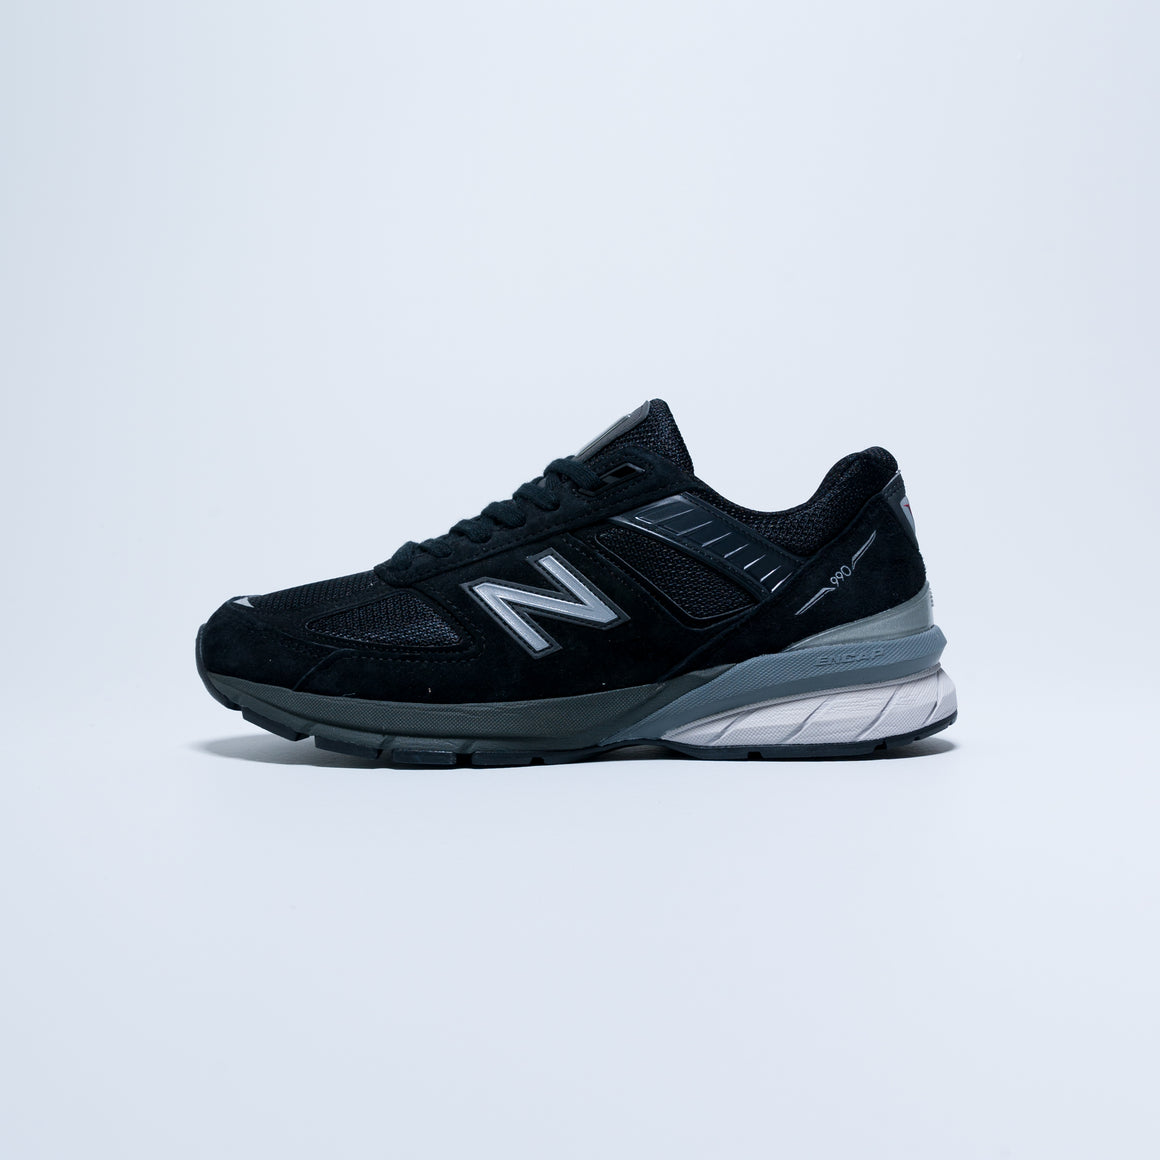 New Balance - [title] - Up There